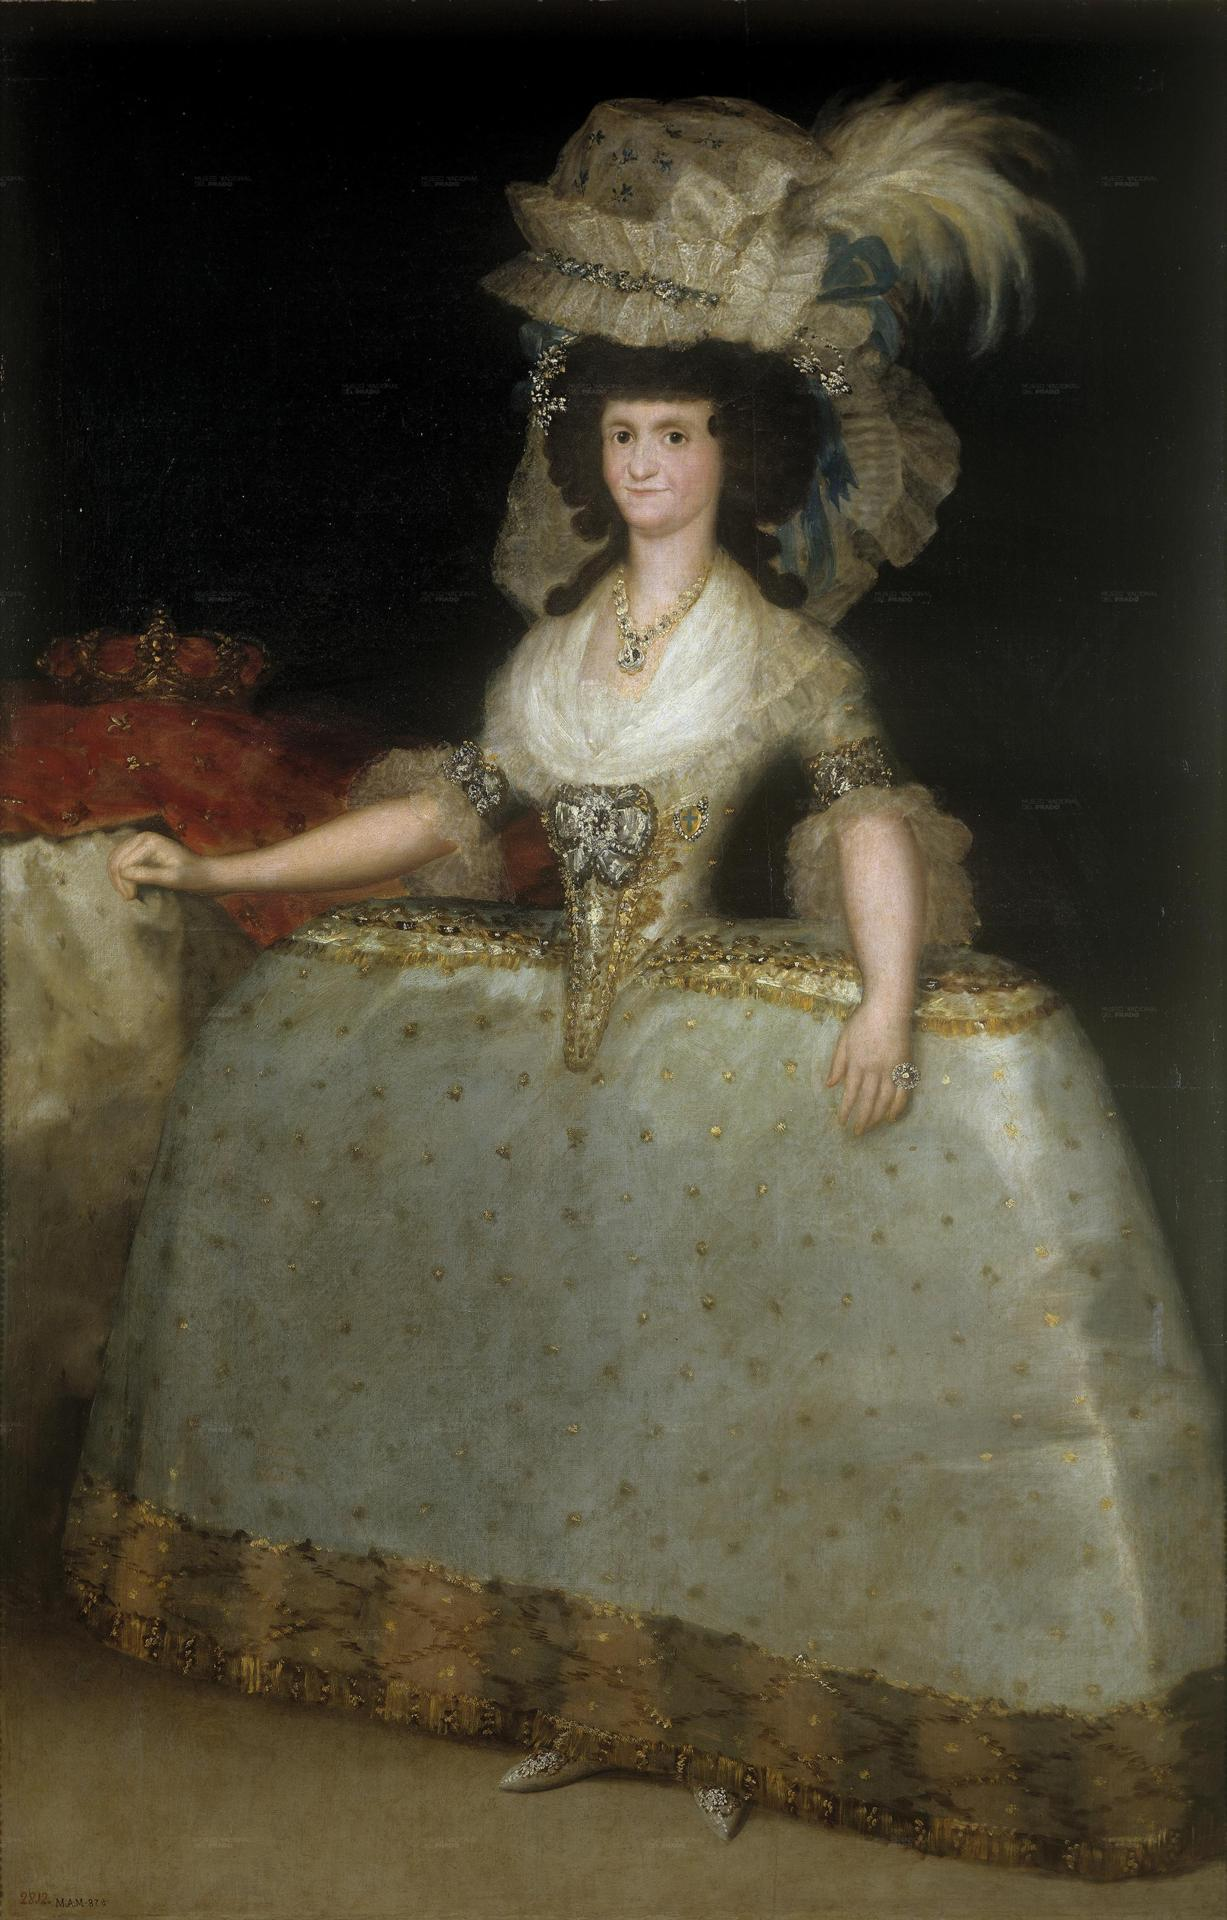 Francisco de Goya - Maria Luisa de Parma con tontillo, 1789. Oil on canvas